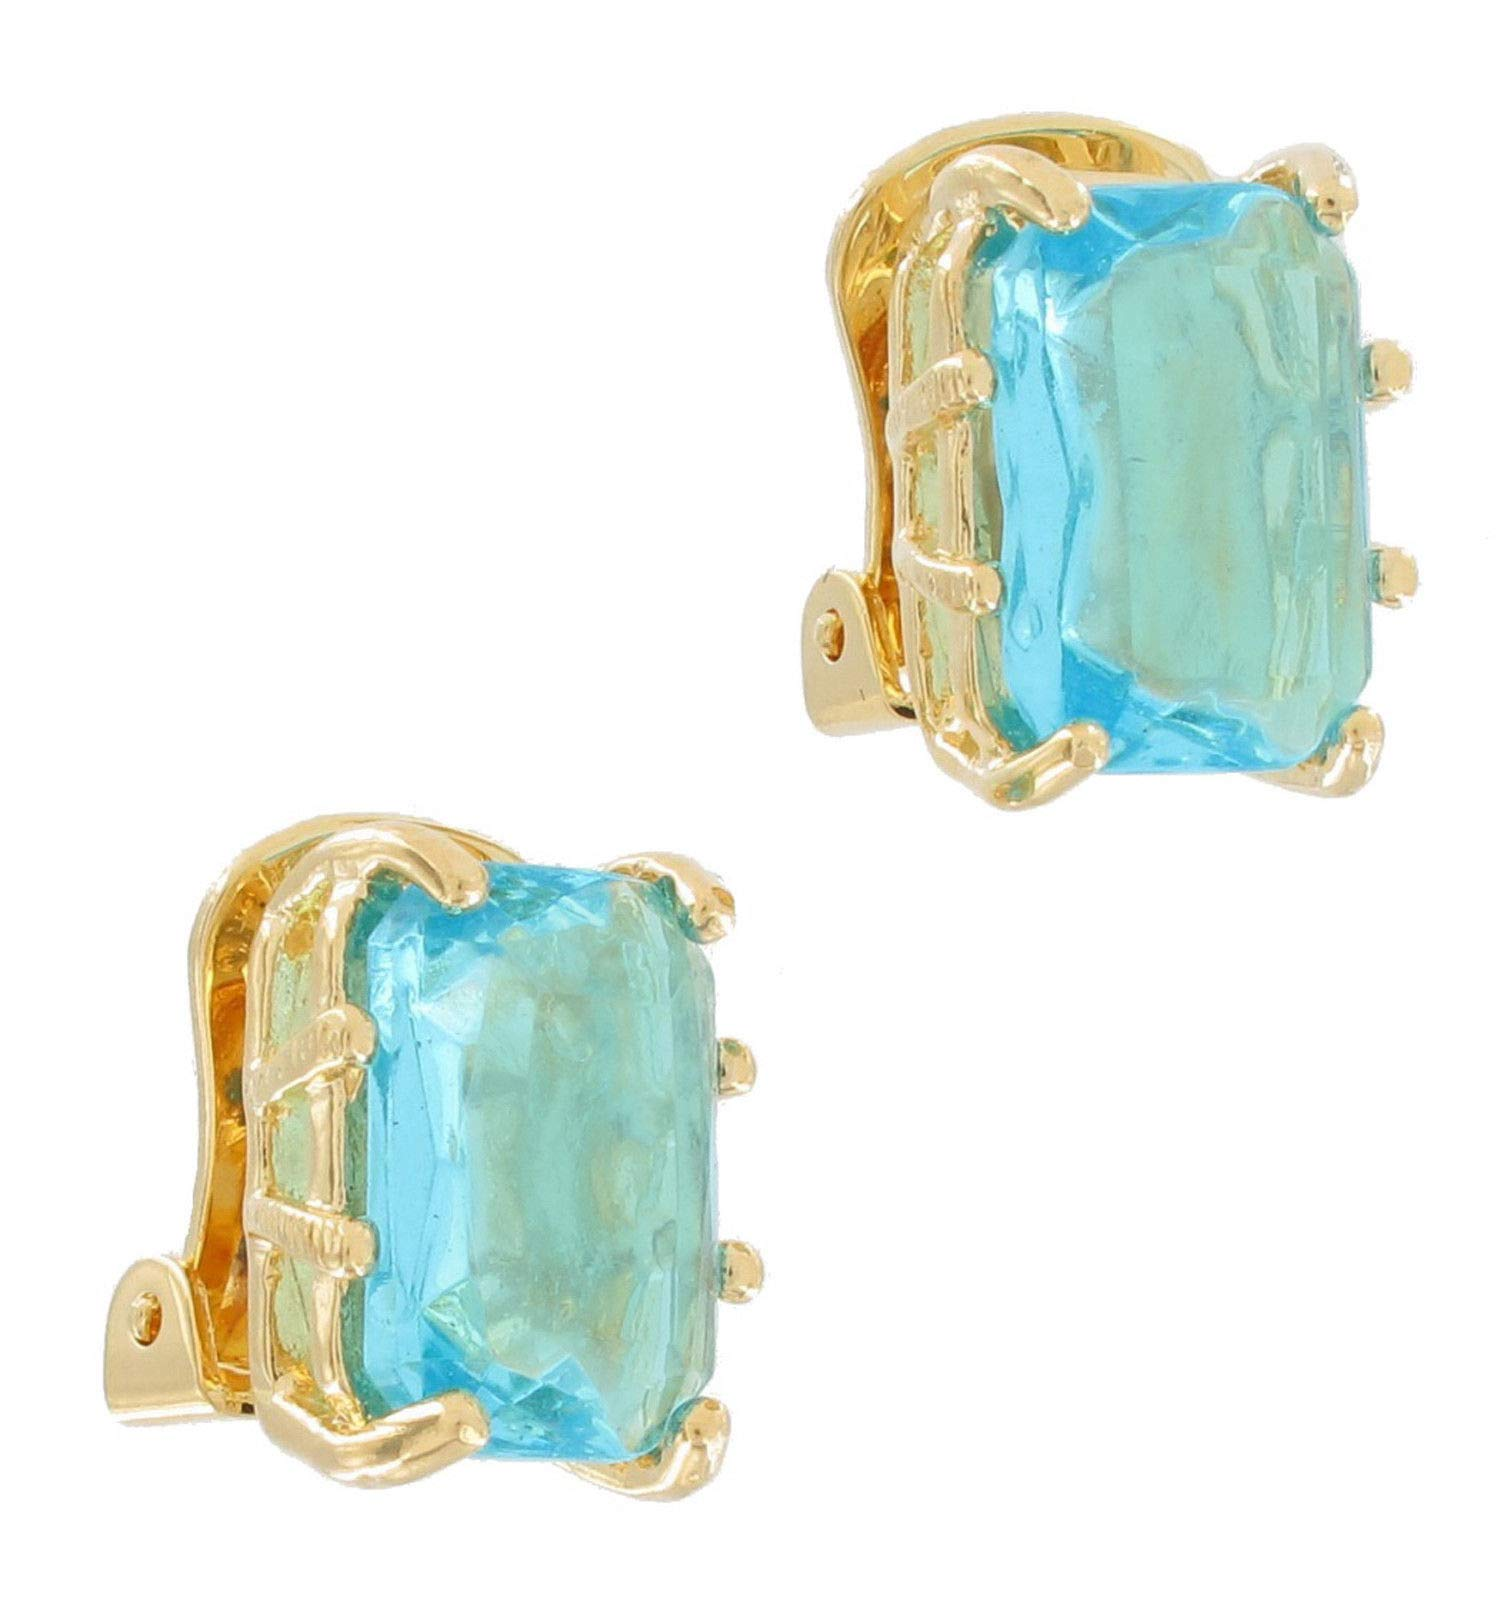 Crystal Aquamarine Blue Gold Tone Octagon Clip On Earrings Big Jewel USA Made Earrings For Women Set by Wholesale Fashion Earrings